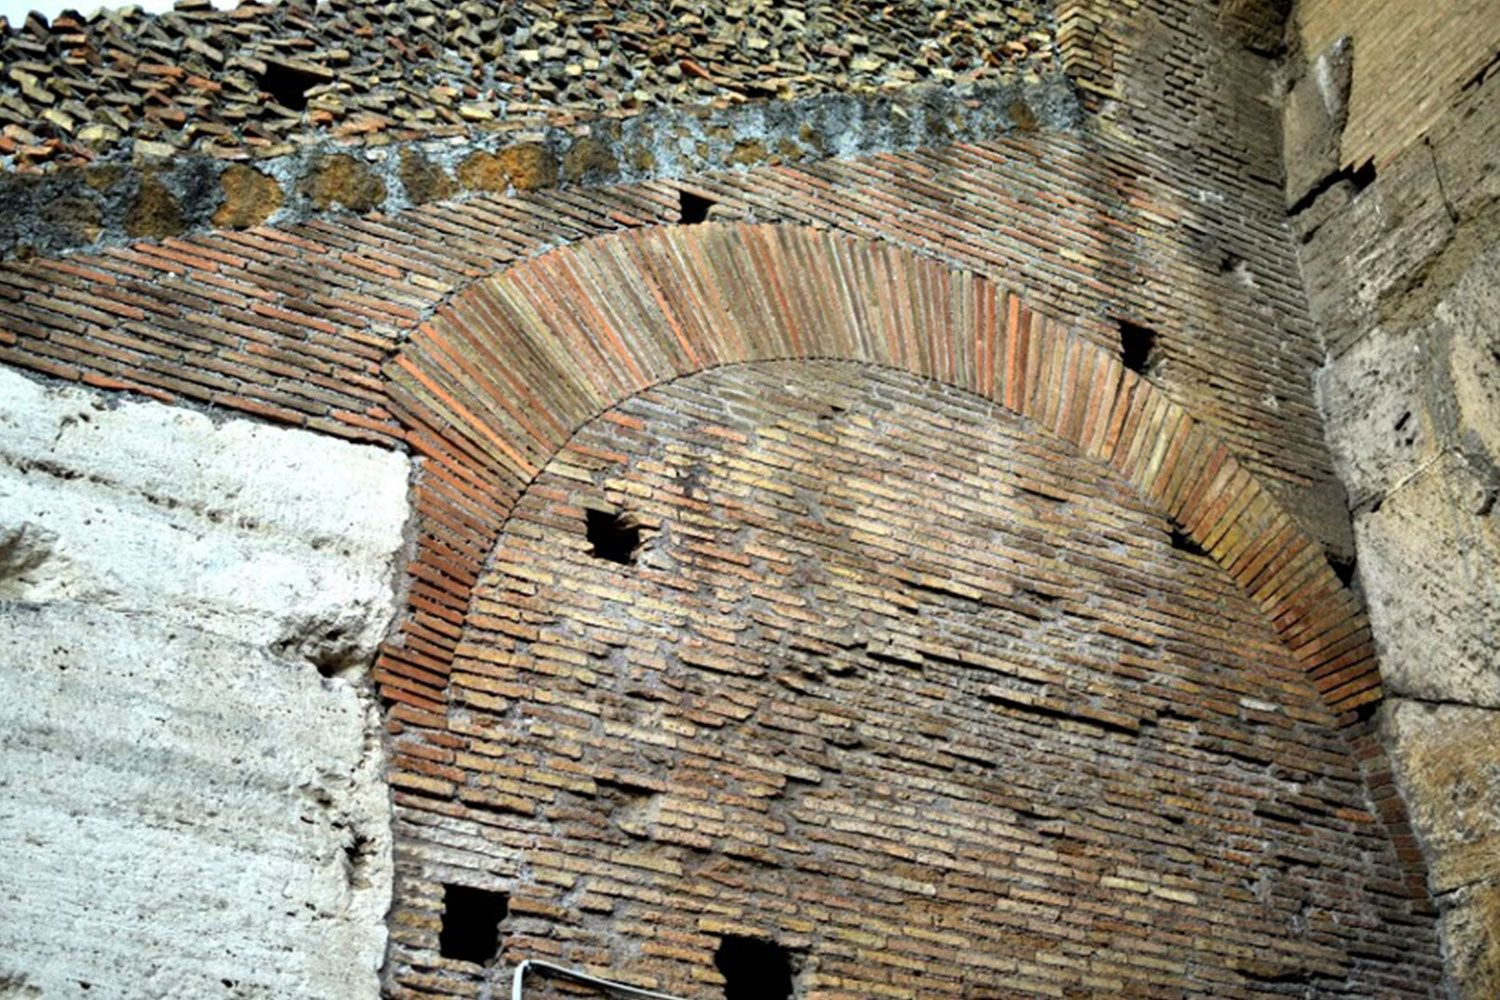 The arch was a great Roman architectural innovation